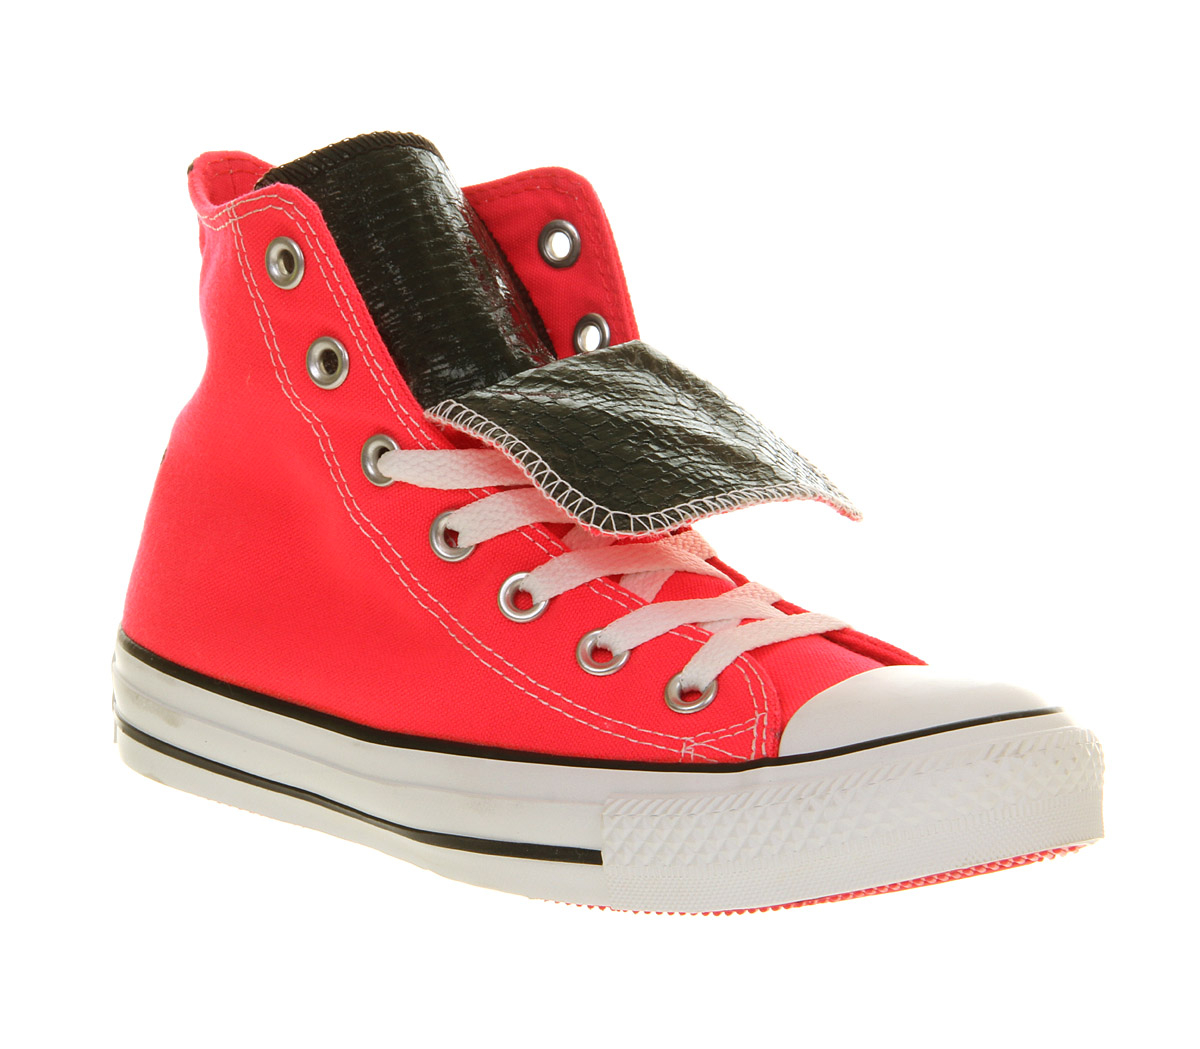 e6df02b9f6da58 Converse All Star Hi Double Tongue Neon Pink Snake Exclusive in Pink ...